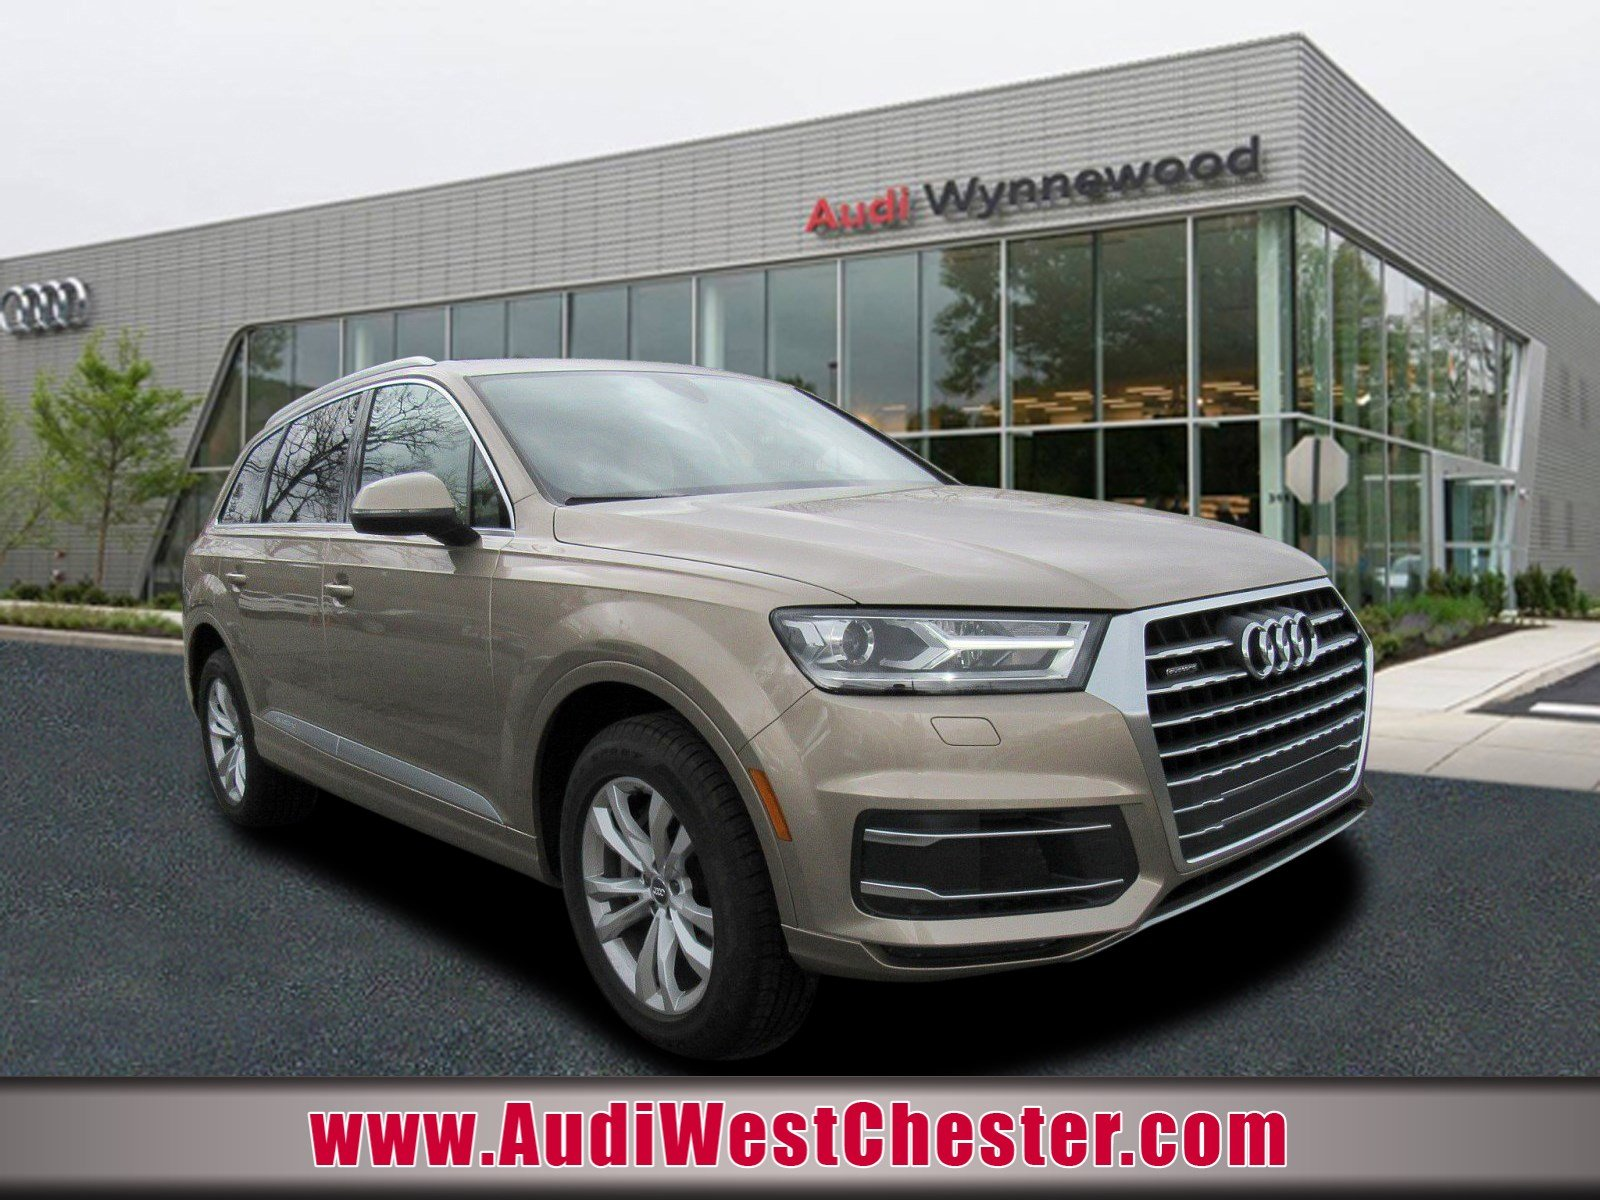 new featured vehicles audi west chester. Black Bedroom Furniture Sets. Home Design Ideas